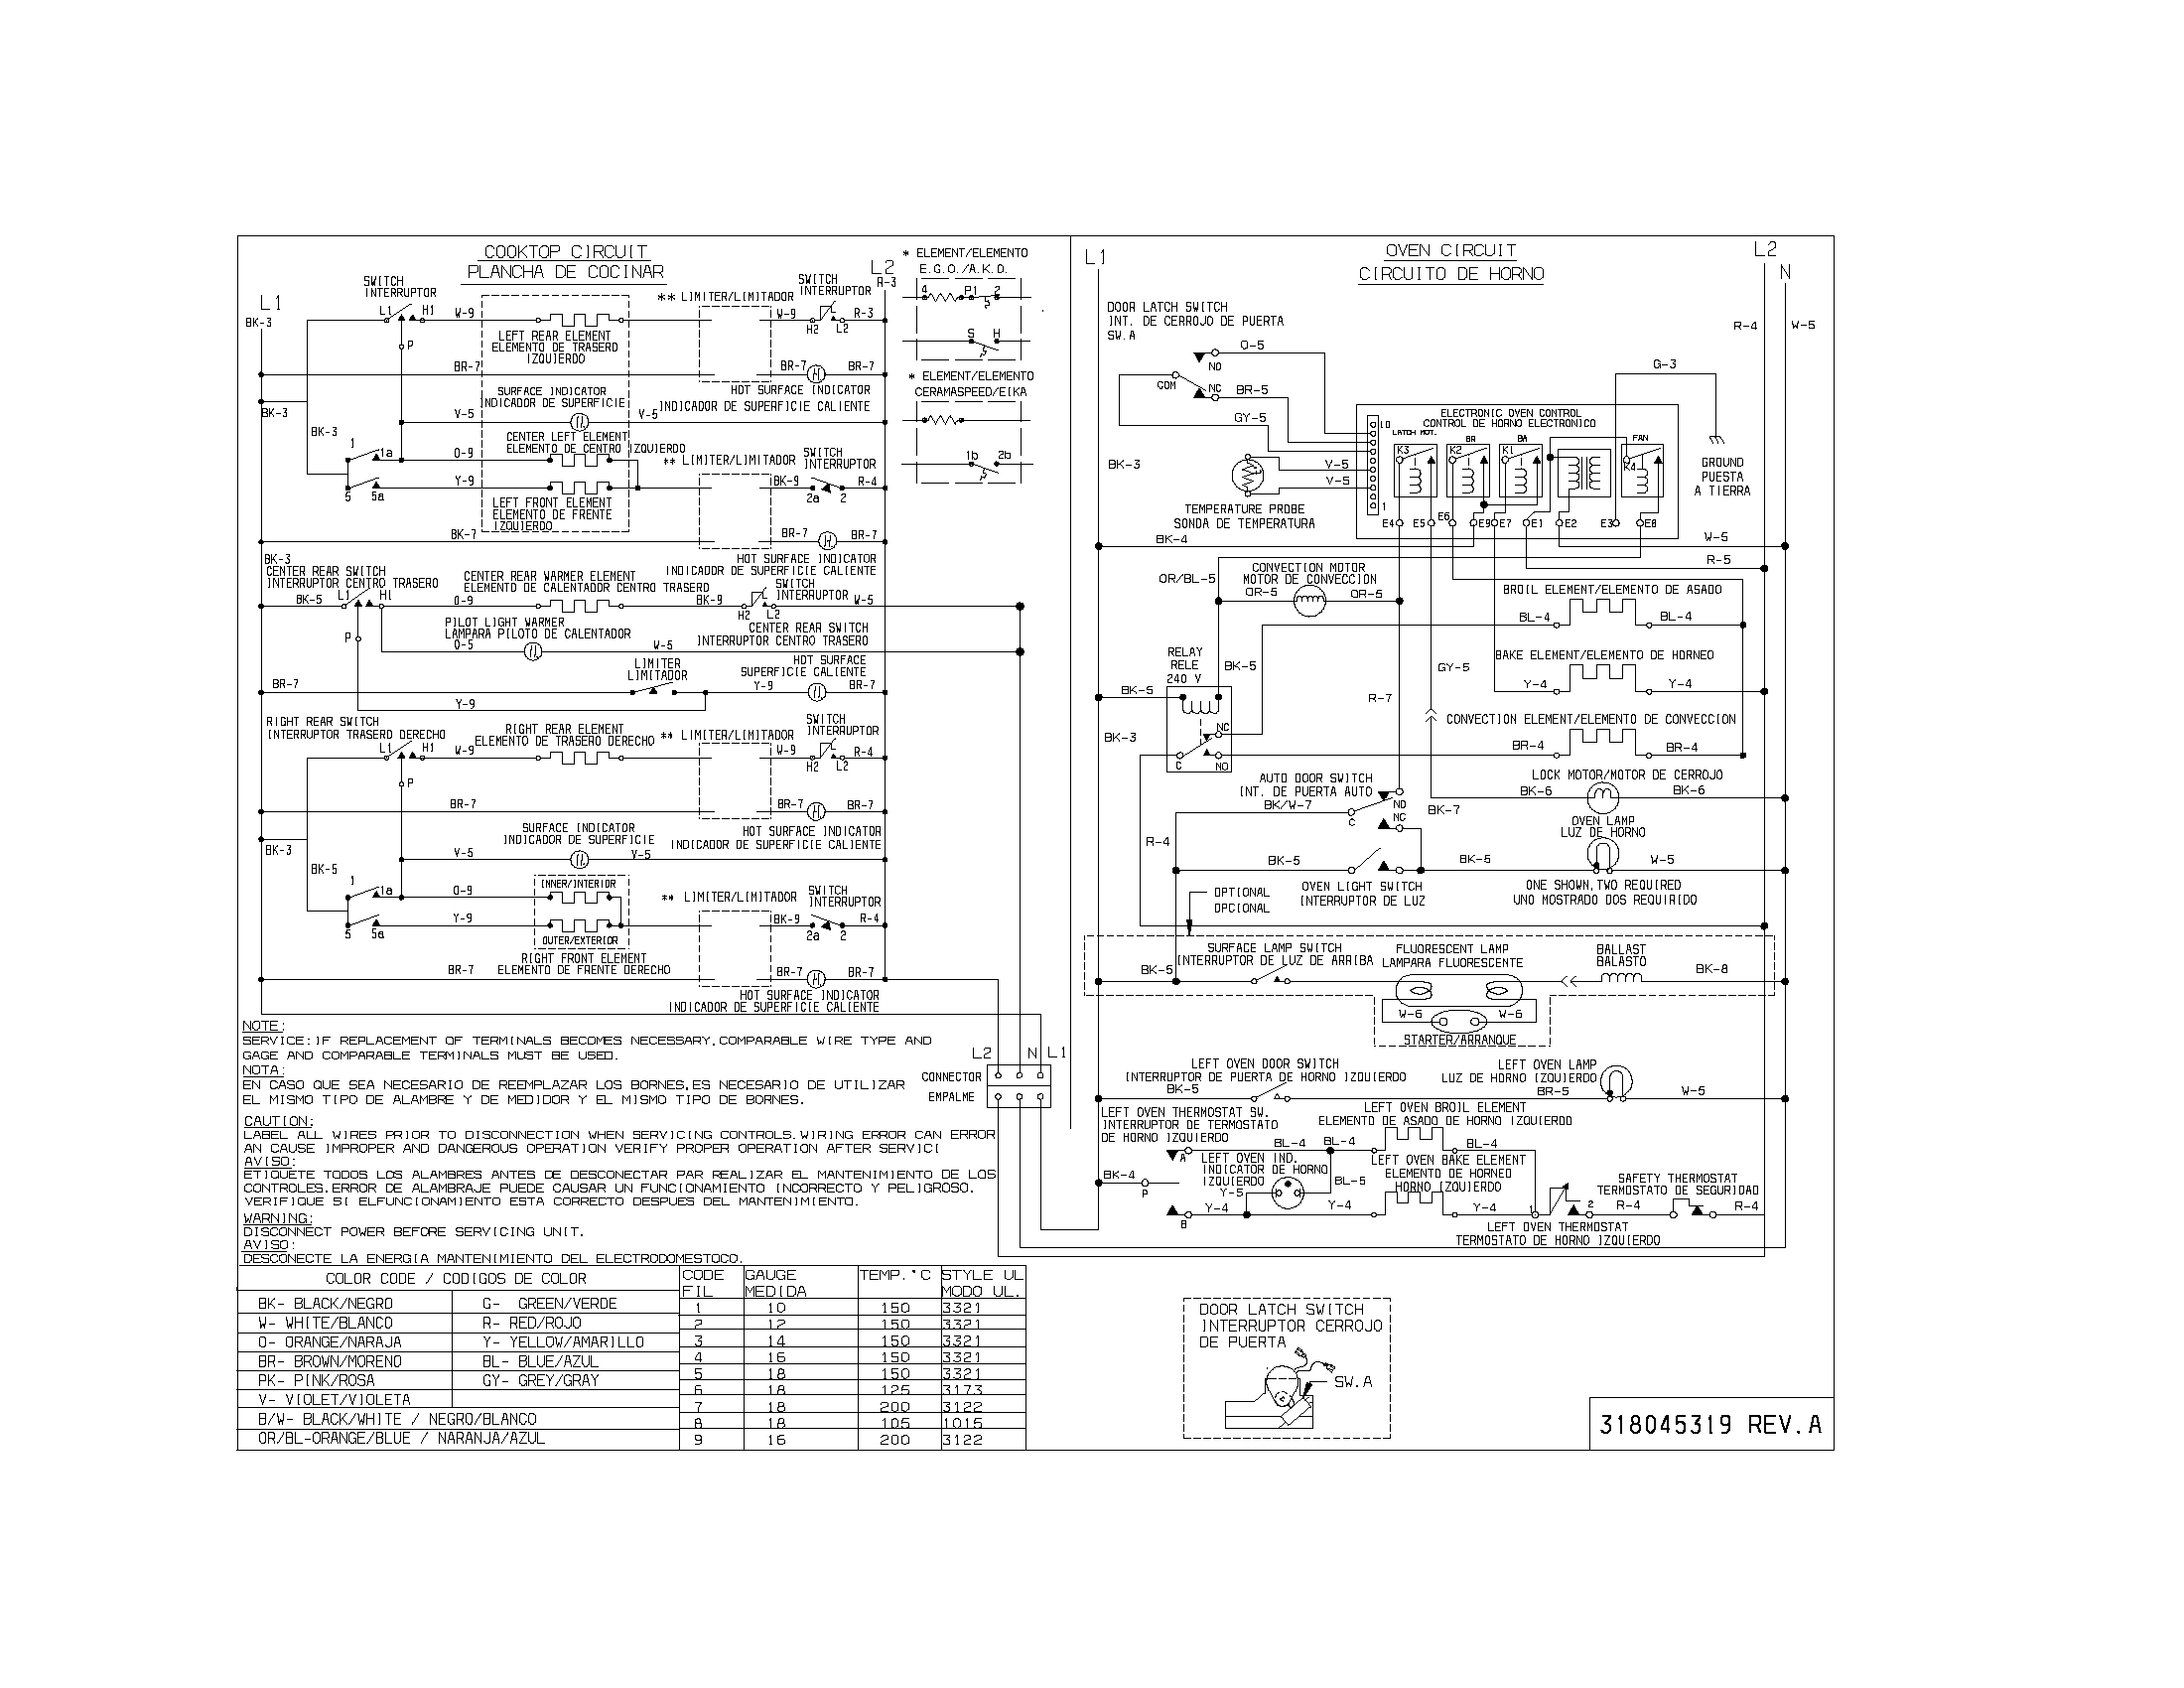 wiring diagram parts kenmore 79099503993 elite electric range timer stove clocks and kenmore electric range wiring diagram at creativeand.co